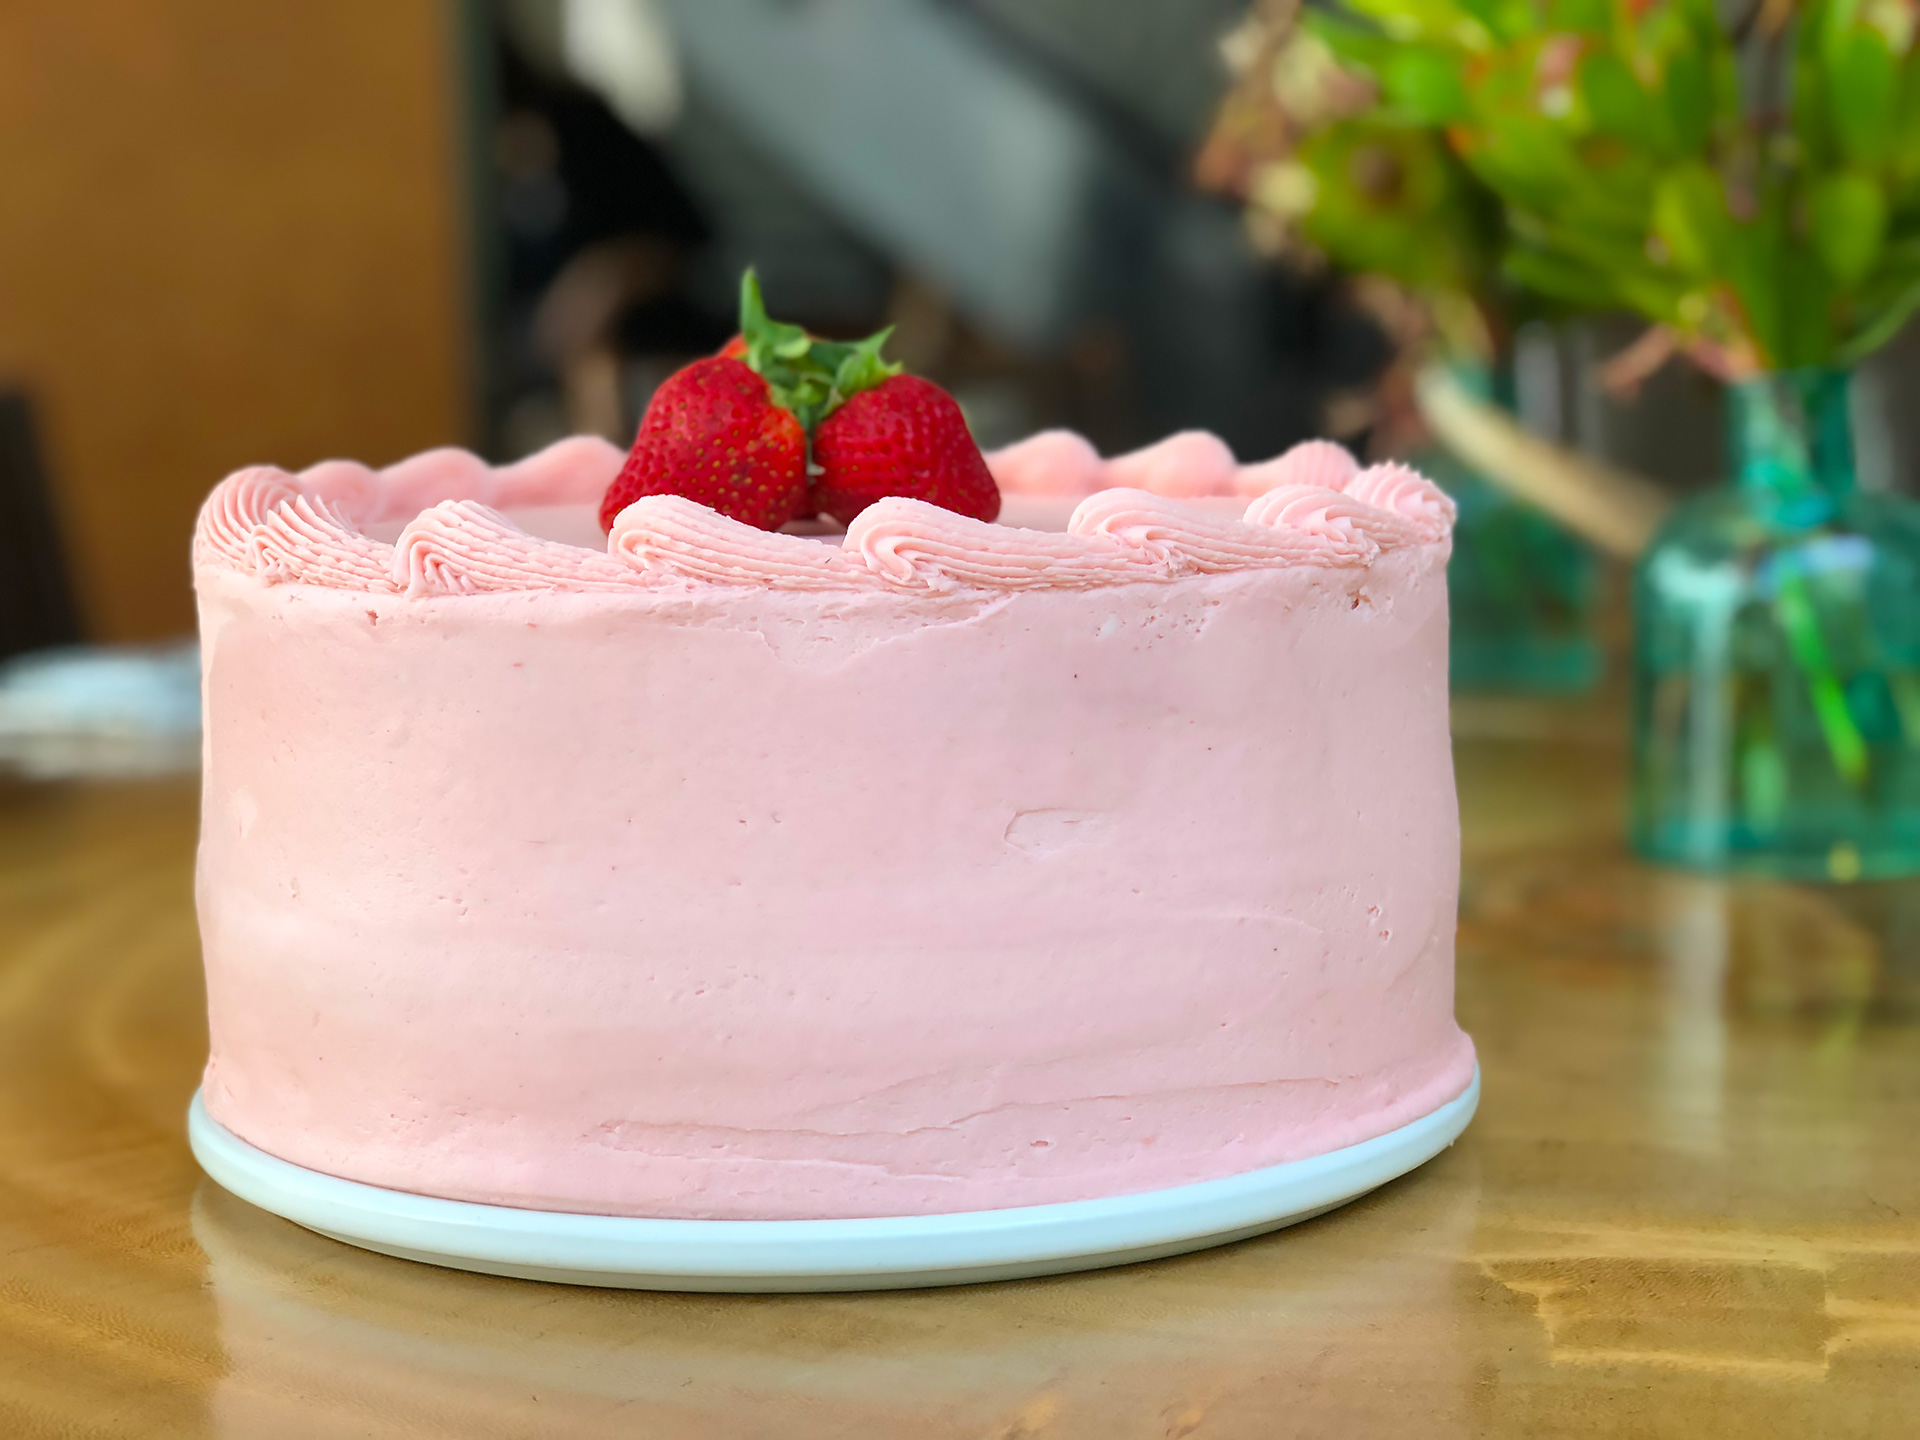 Enjoy the Strawberry Tall Cake at Bluestem Brasserie.